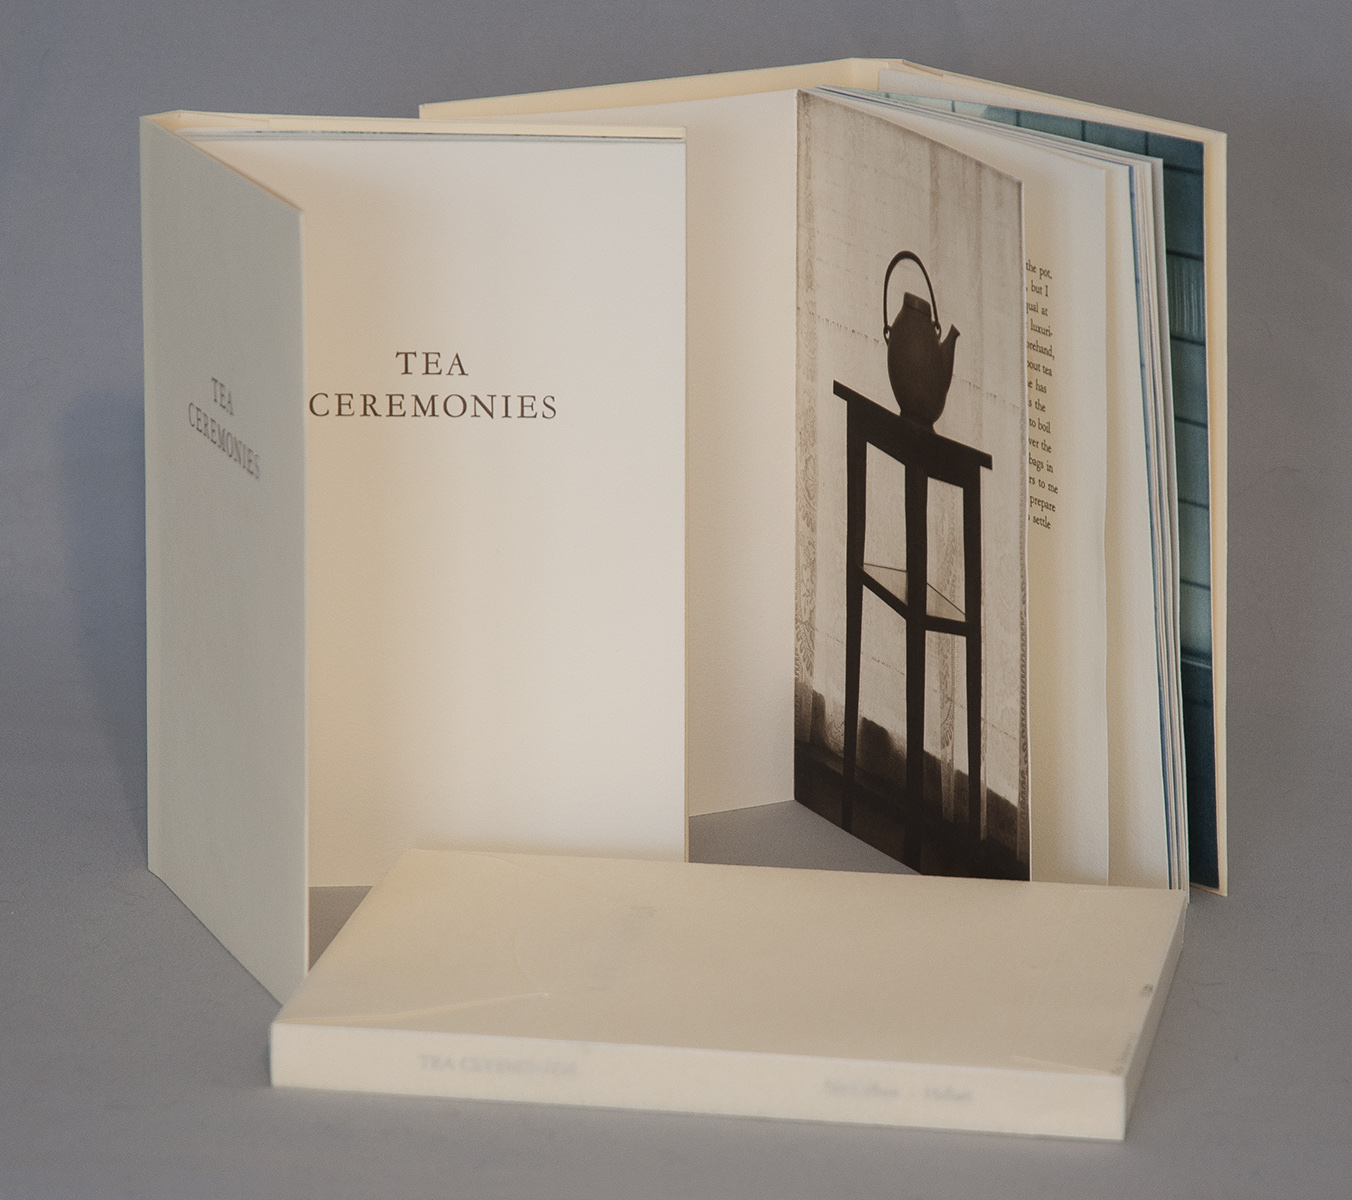 © 2016 M. MacCallum, Tea Ceremonies, (text by Matthew Hollett), hand-bound accordion artists' book with folded paper cover and wrapper, images printed in photogravure and lithography, text printed in letterpress